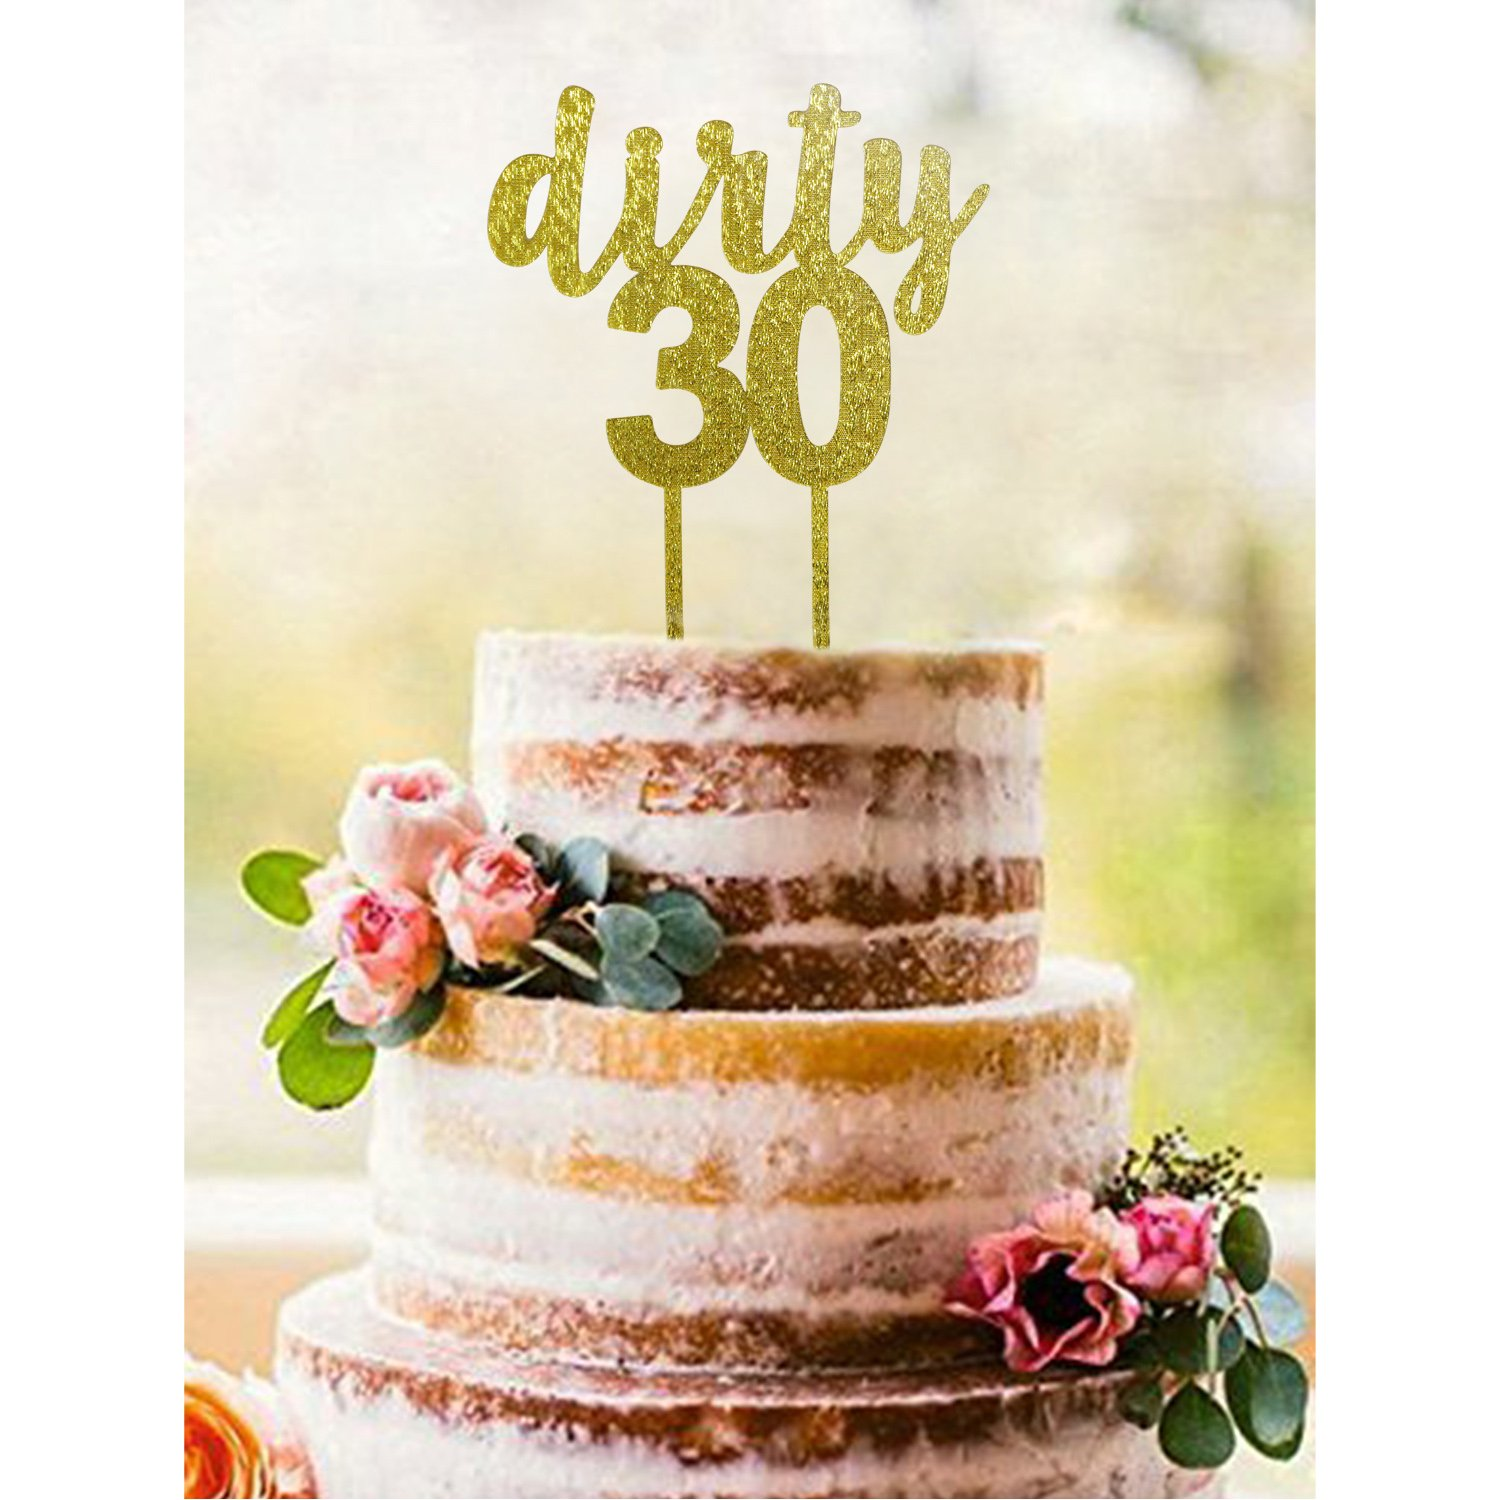 Astounding Buy Gold Dirty 30 Acrylic Cake Topper Dirty Thirty Cake Topper Personalised Birthday Cards Petedlily Jamesorg